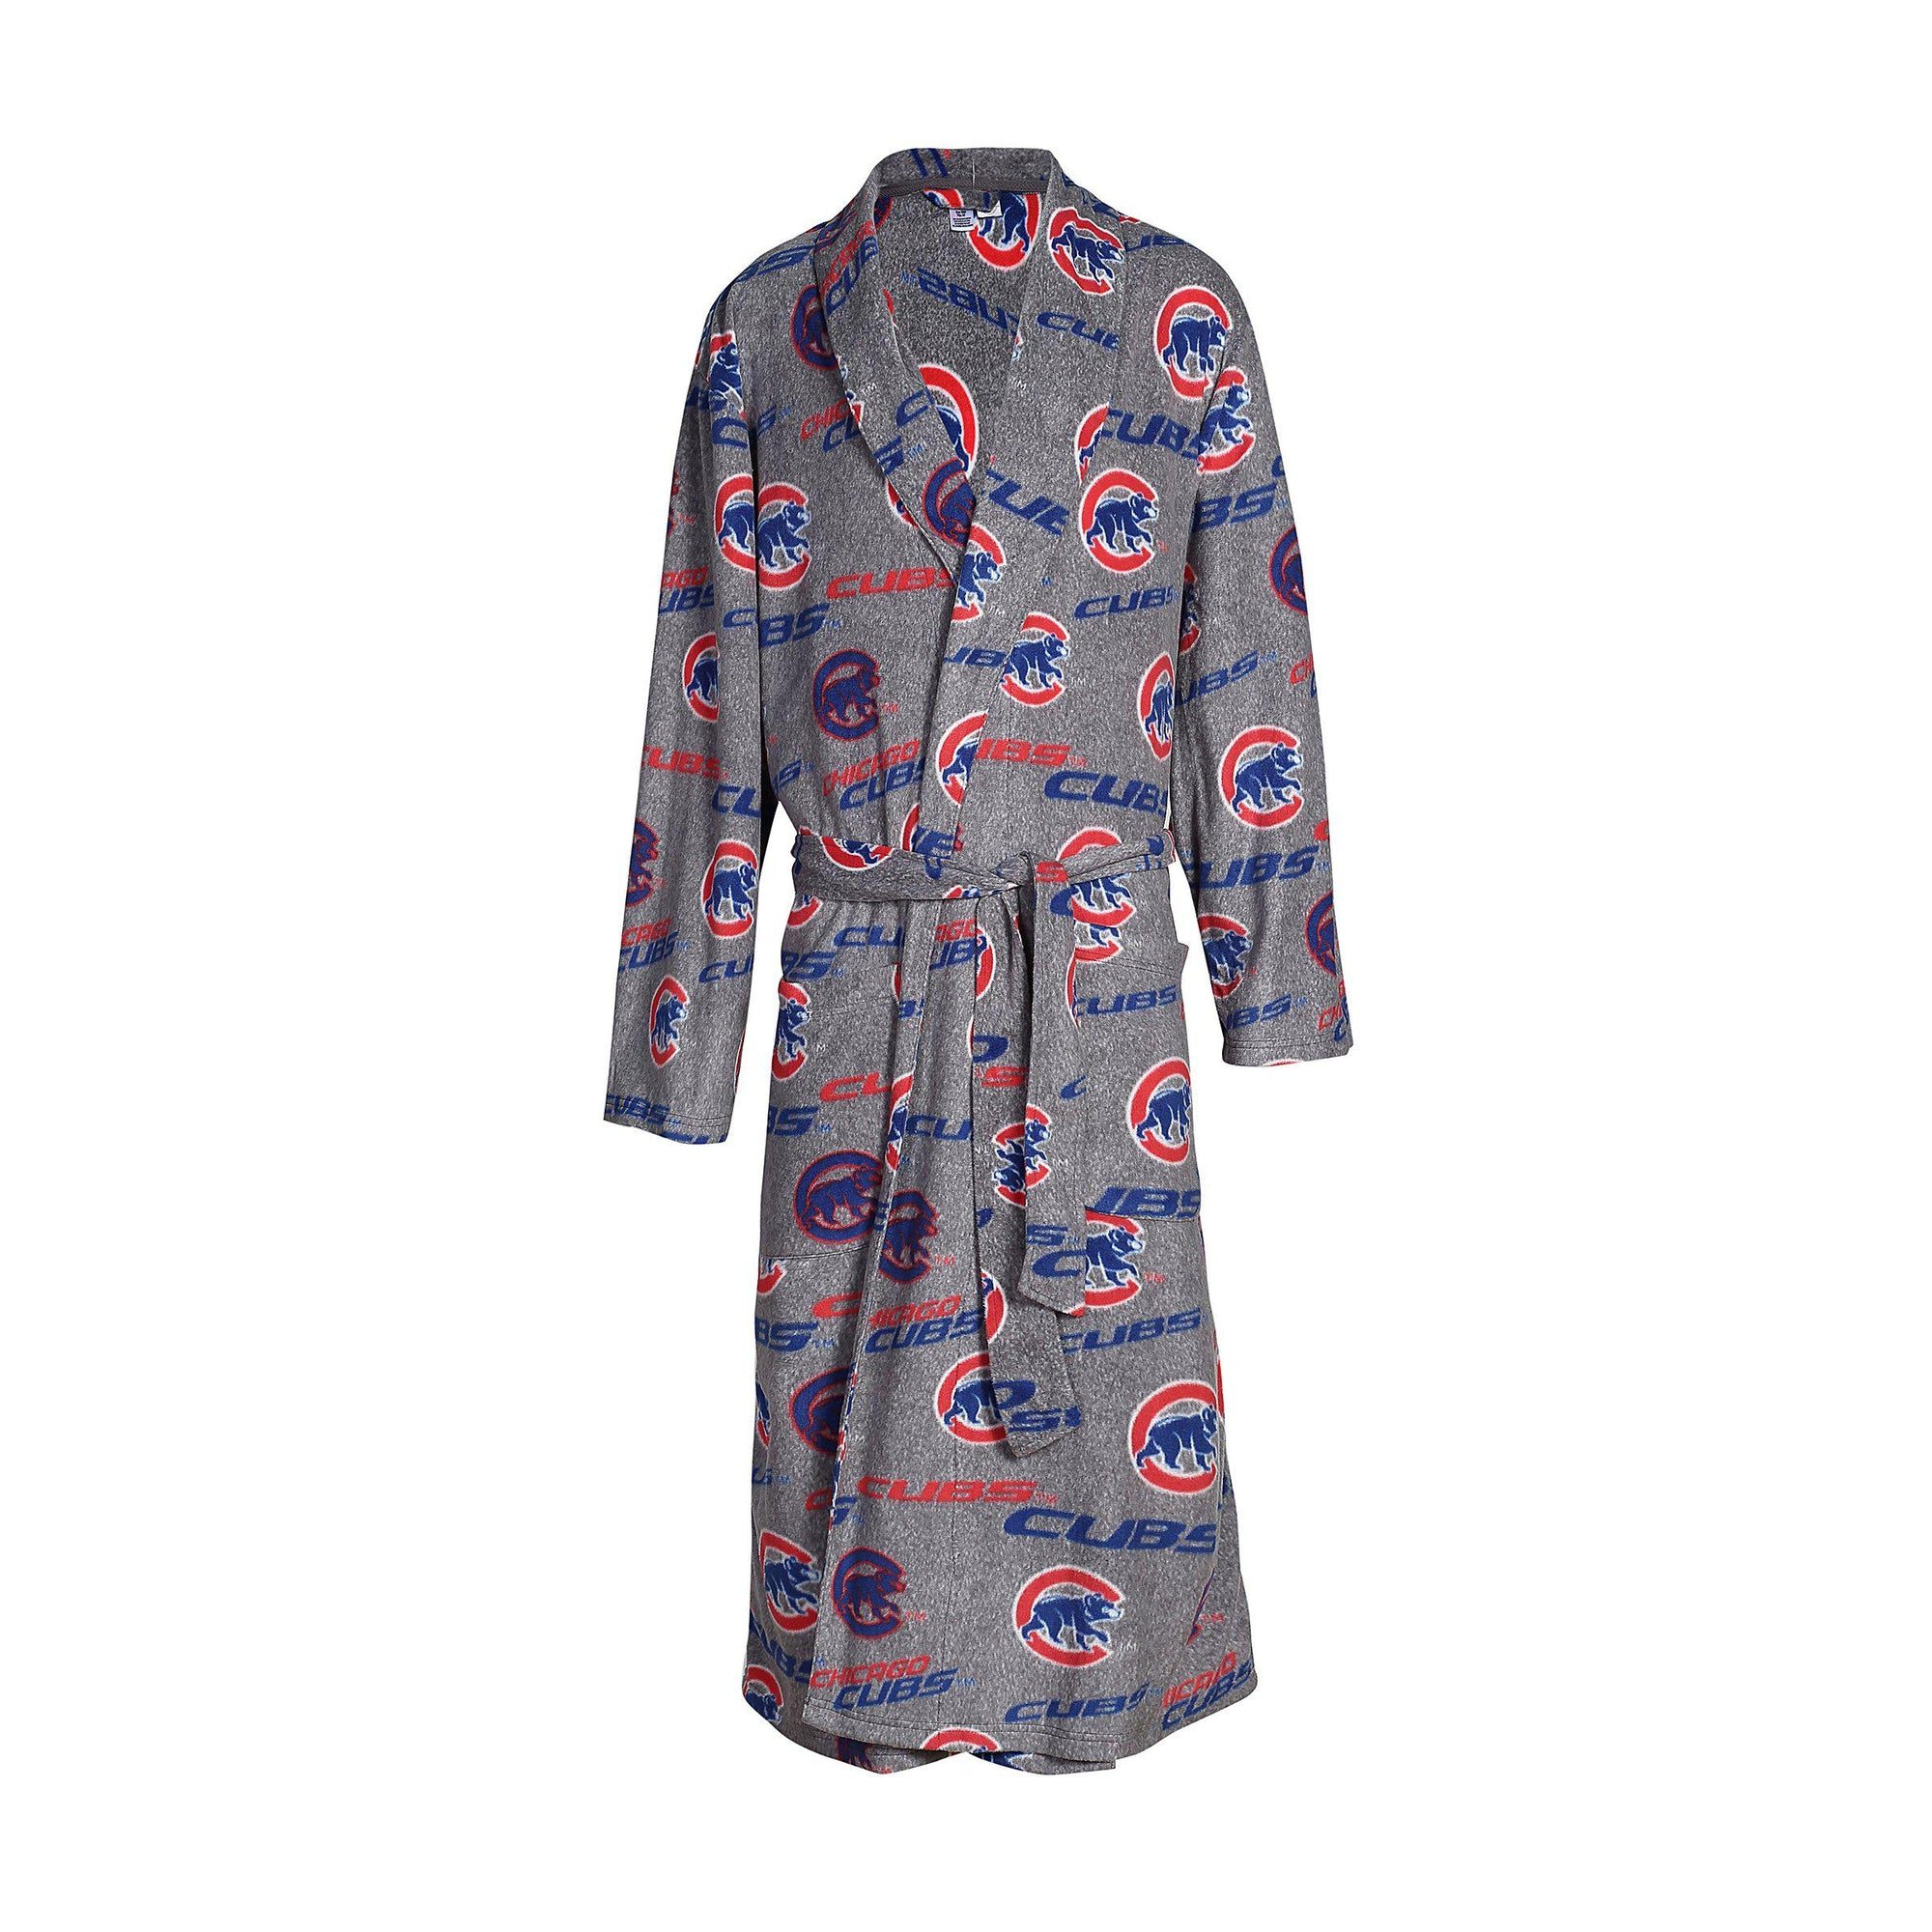 Chicago Cubs Achieve Microfleece Bathrobe in Gray-Bathrobe-Concepts Sport-Top Notch Gift Shop